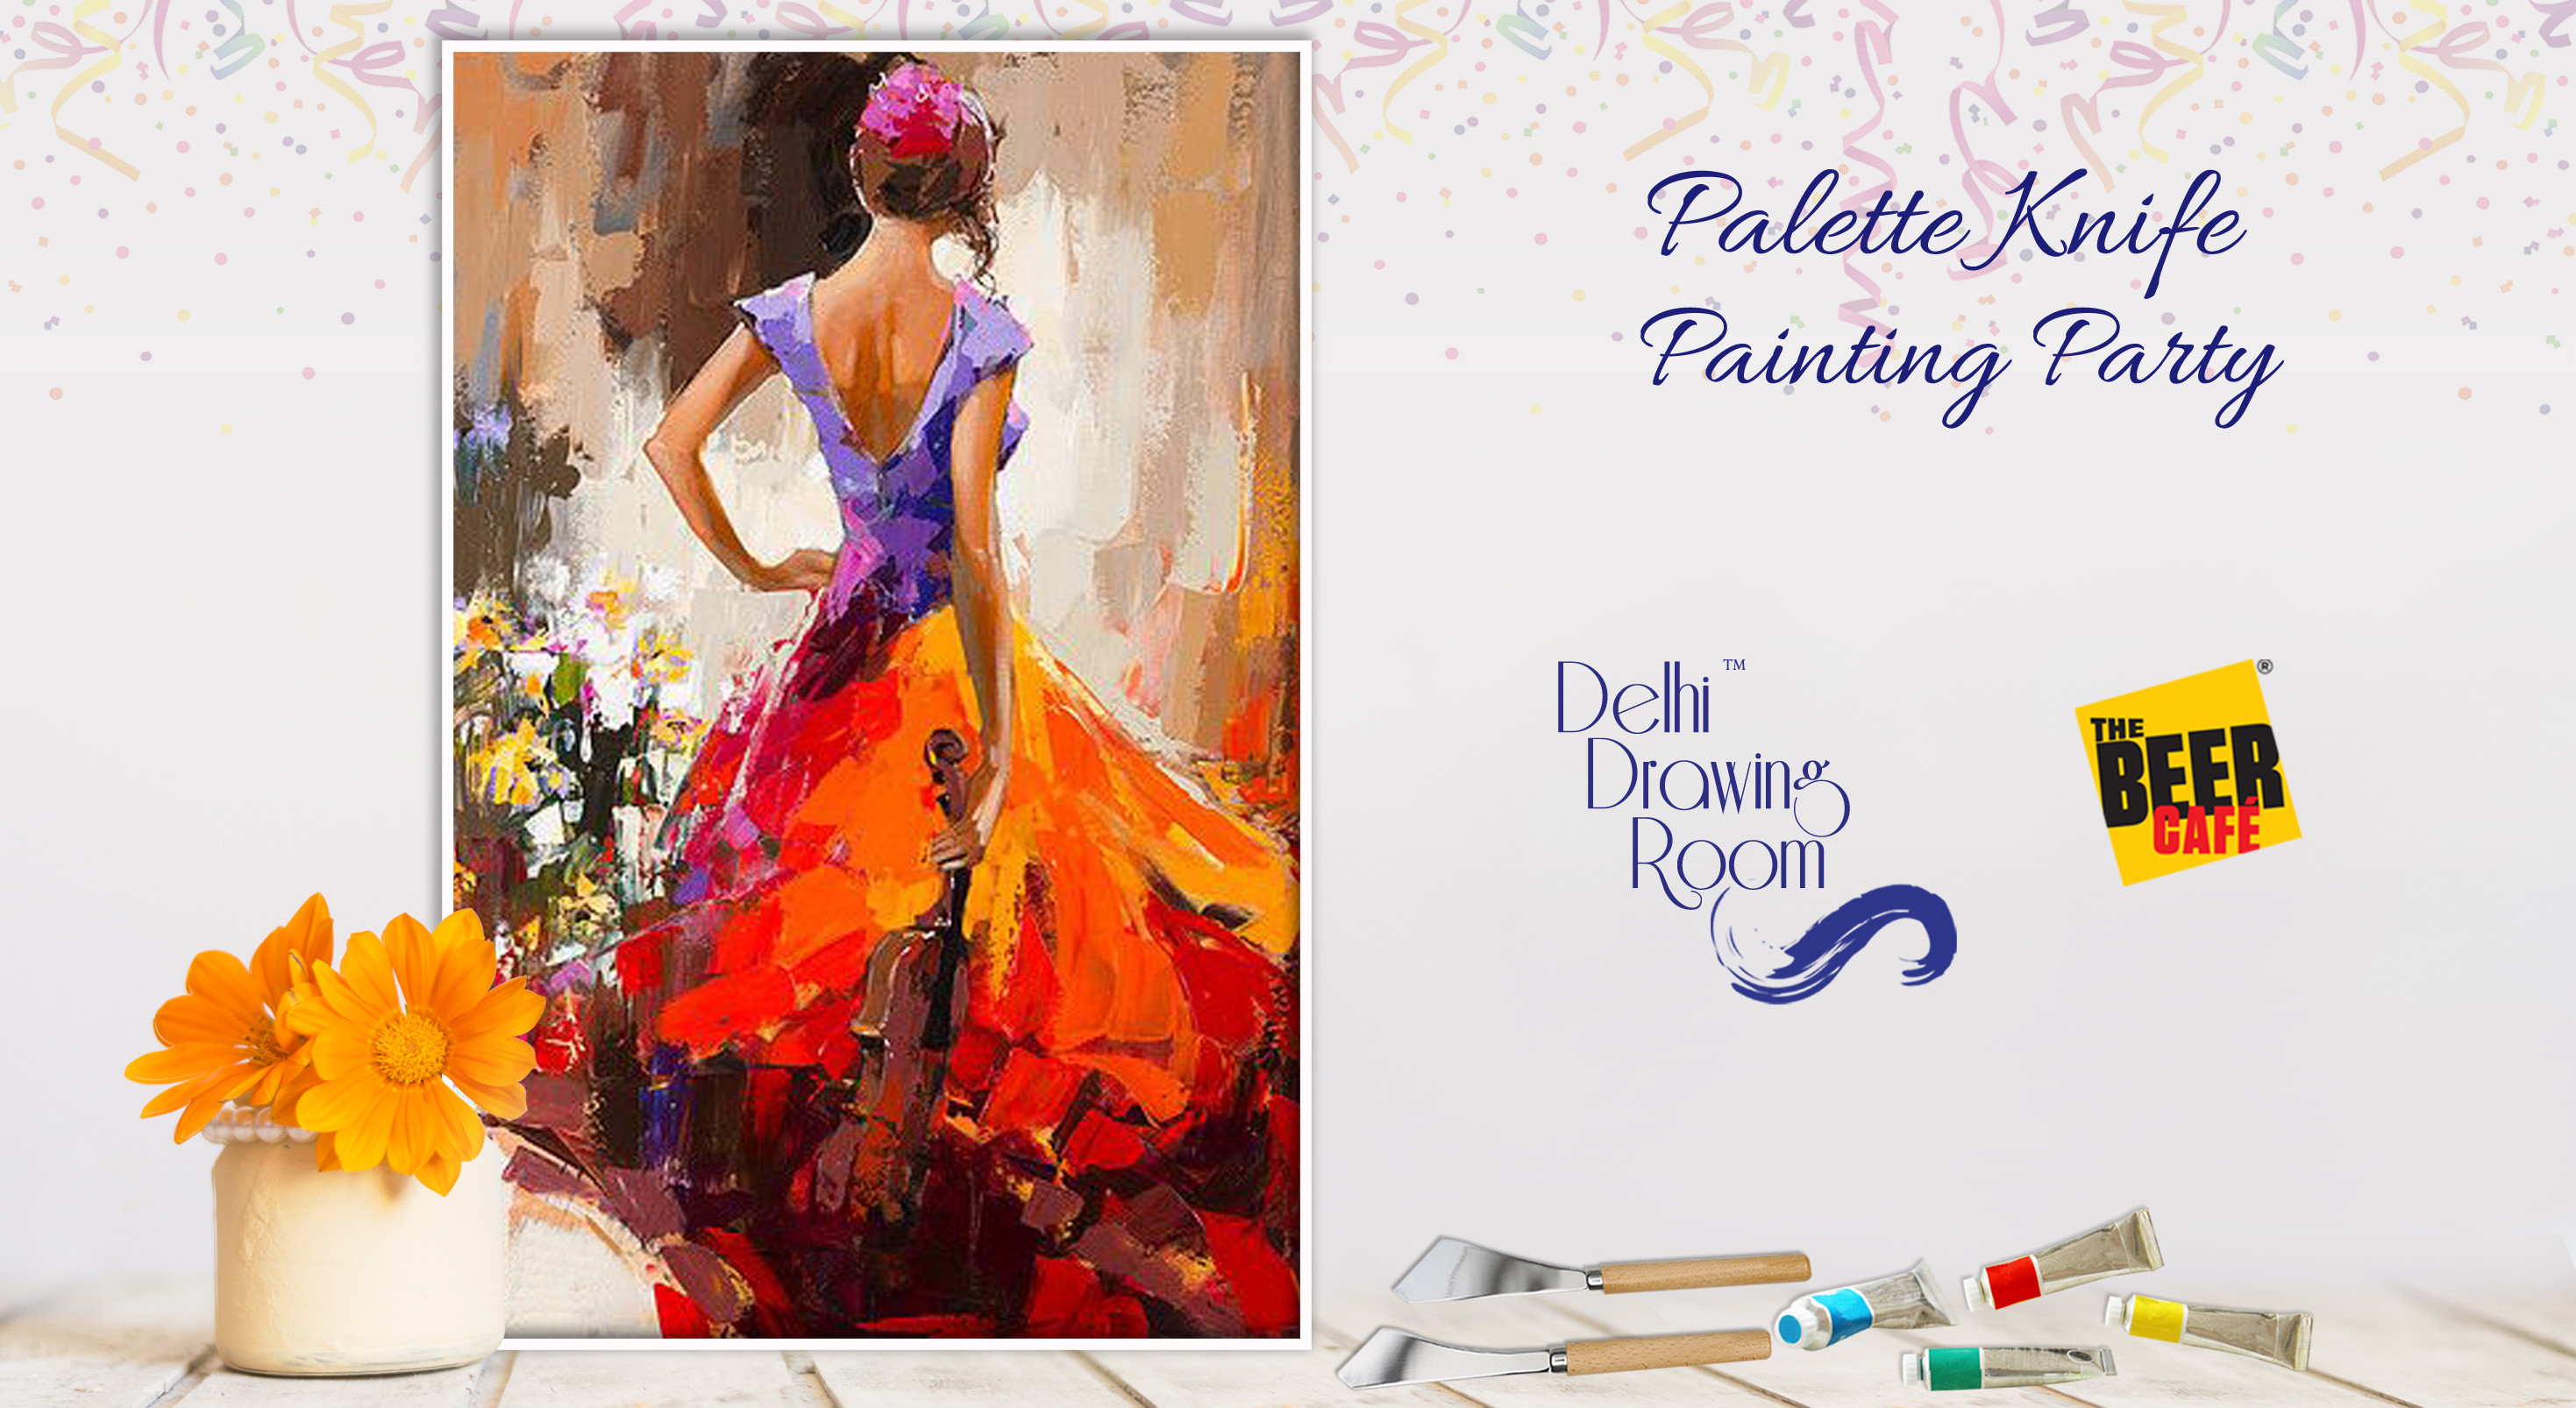 background-image-palette-knife-painting-party-by-delhi-drawing-room-april27-2019-times-prime